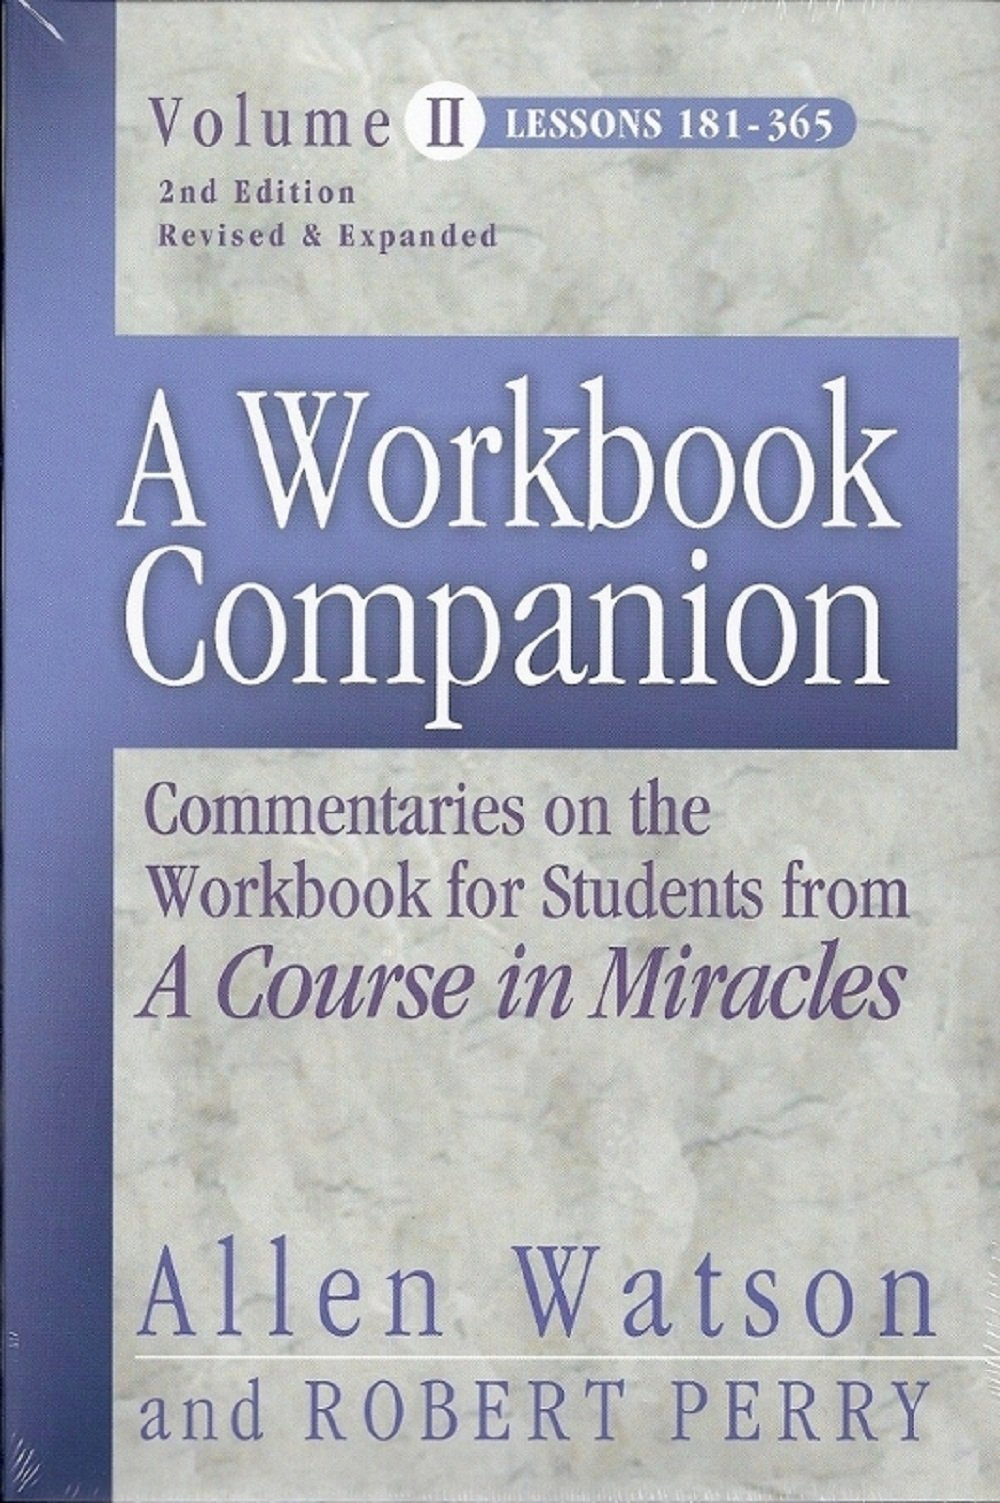 Amazon.com: 2: A Workbook Companion, Vol. II: Commentaries on the ...